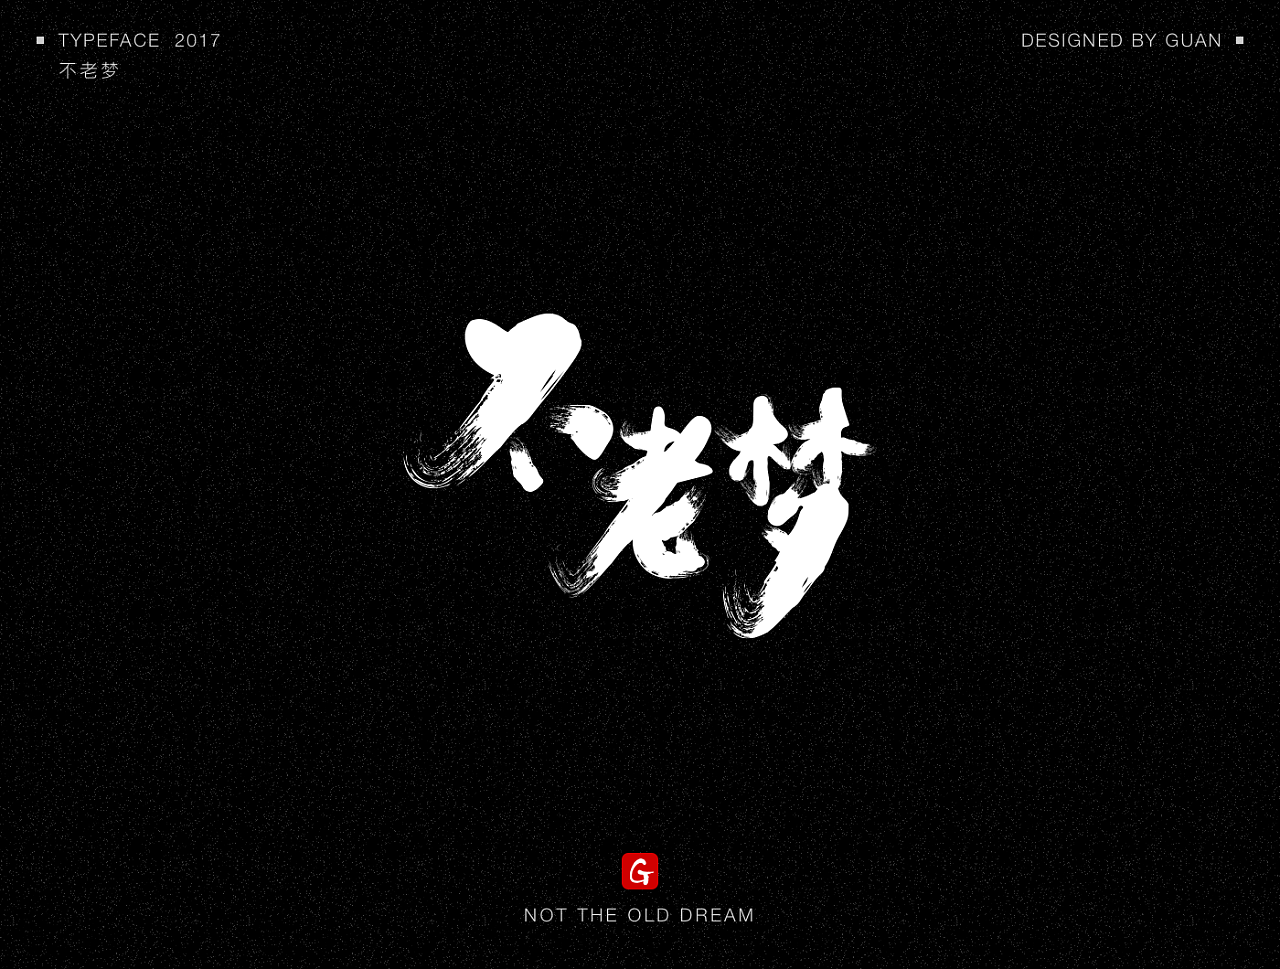 chinesefontdesign.com 2017 09 19 10 53 14 424722 20P Super fashionable Chinese font style design